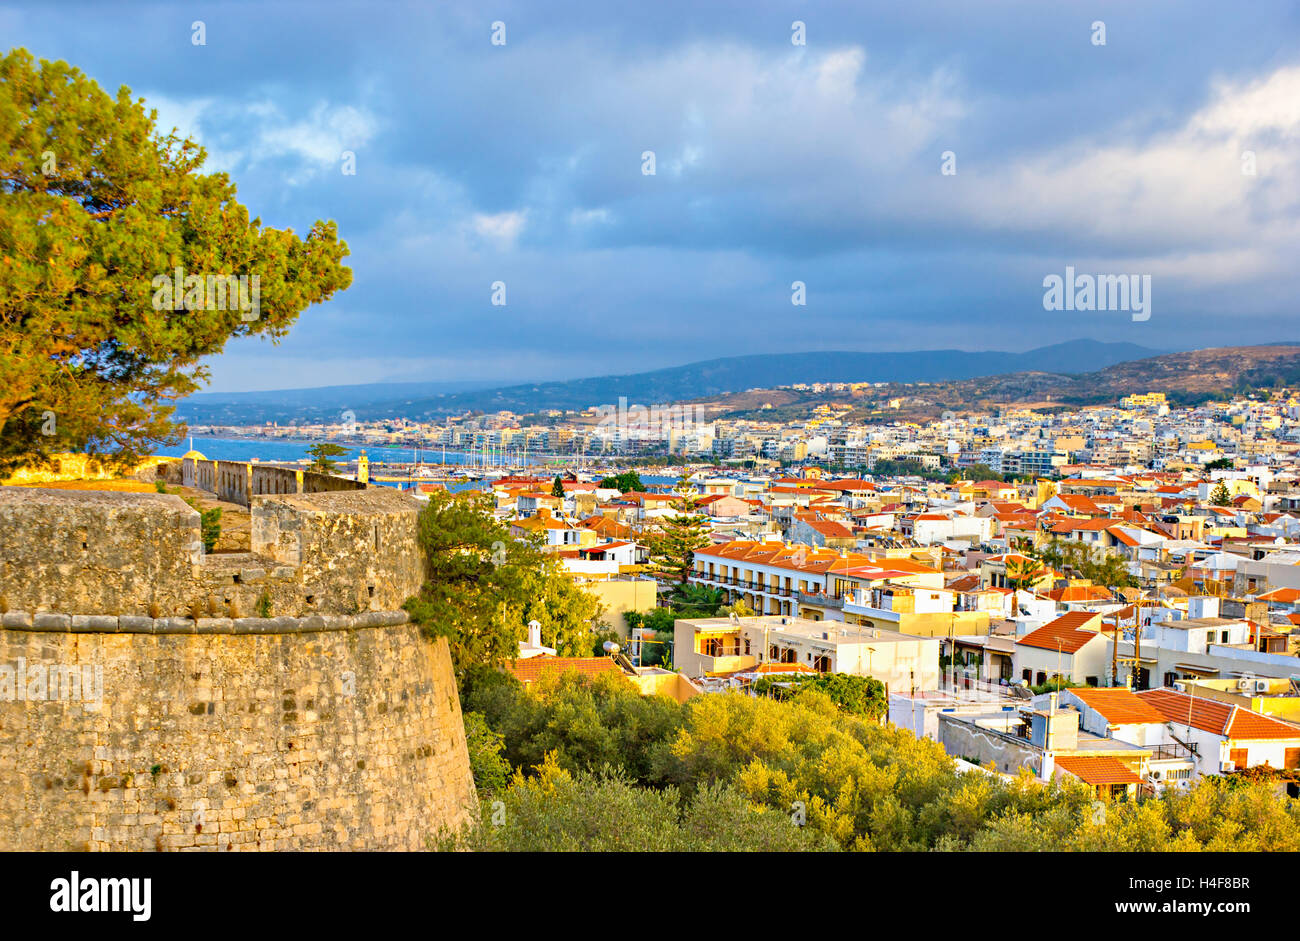 The view on Rethymno city and its port from the  Fortezza (Venetian citadel), located on the hill, Crete, Greece. Stock Photo